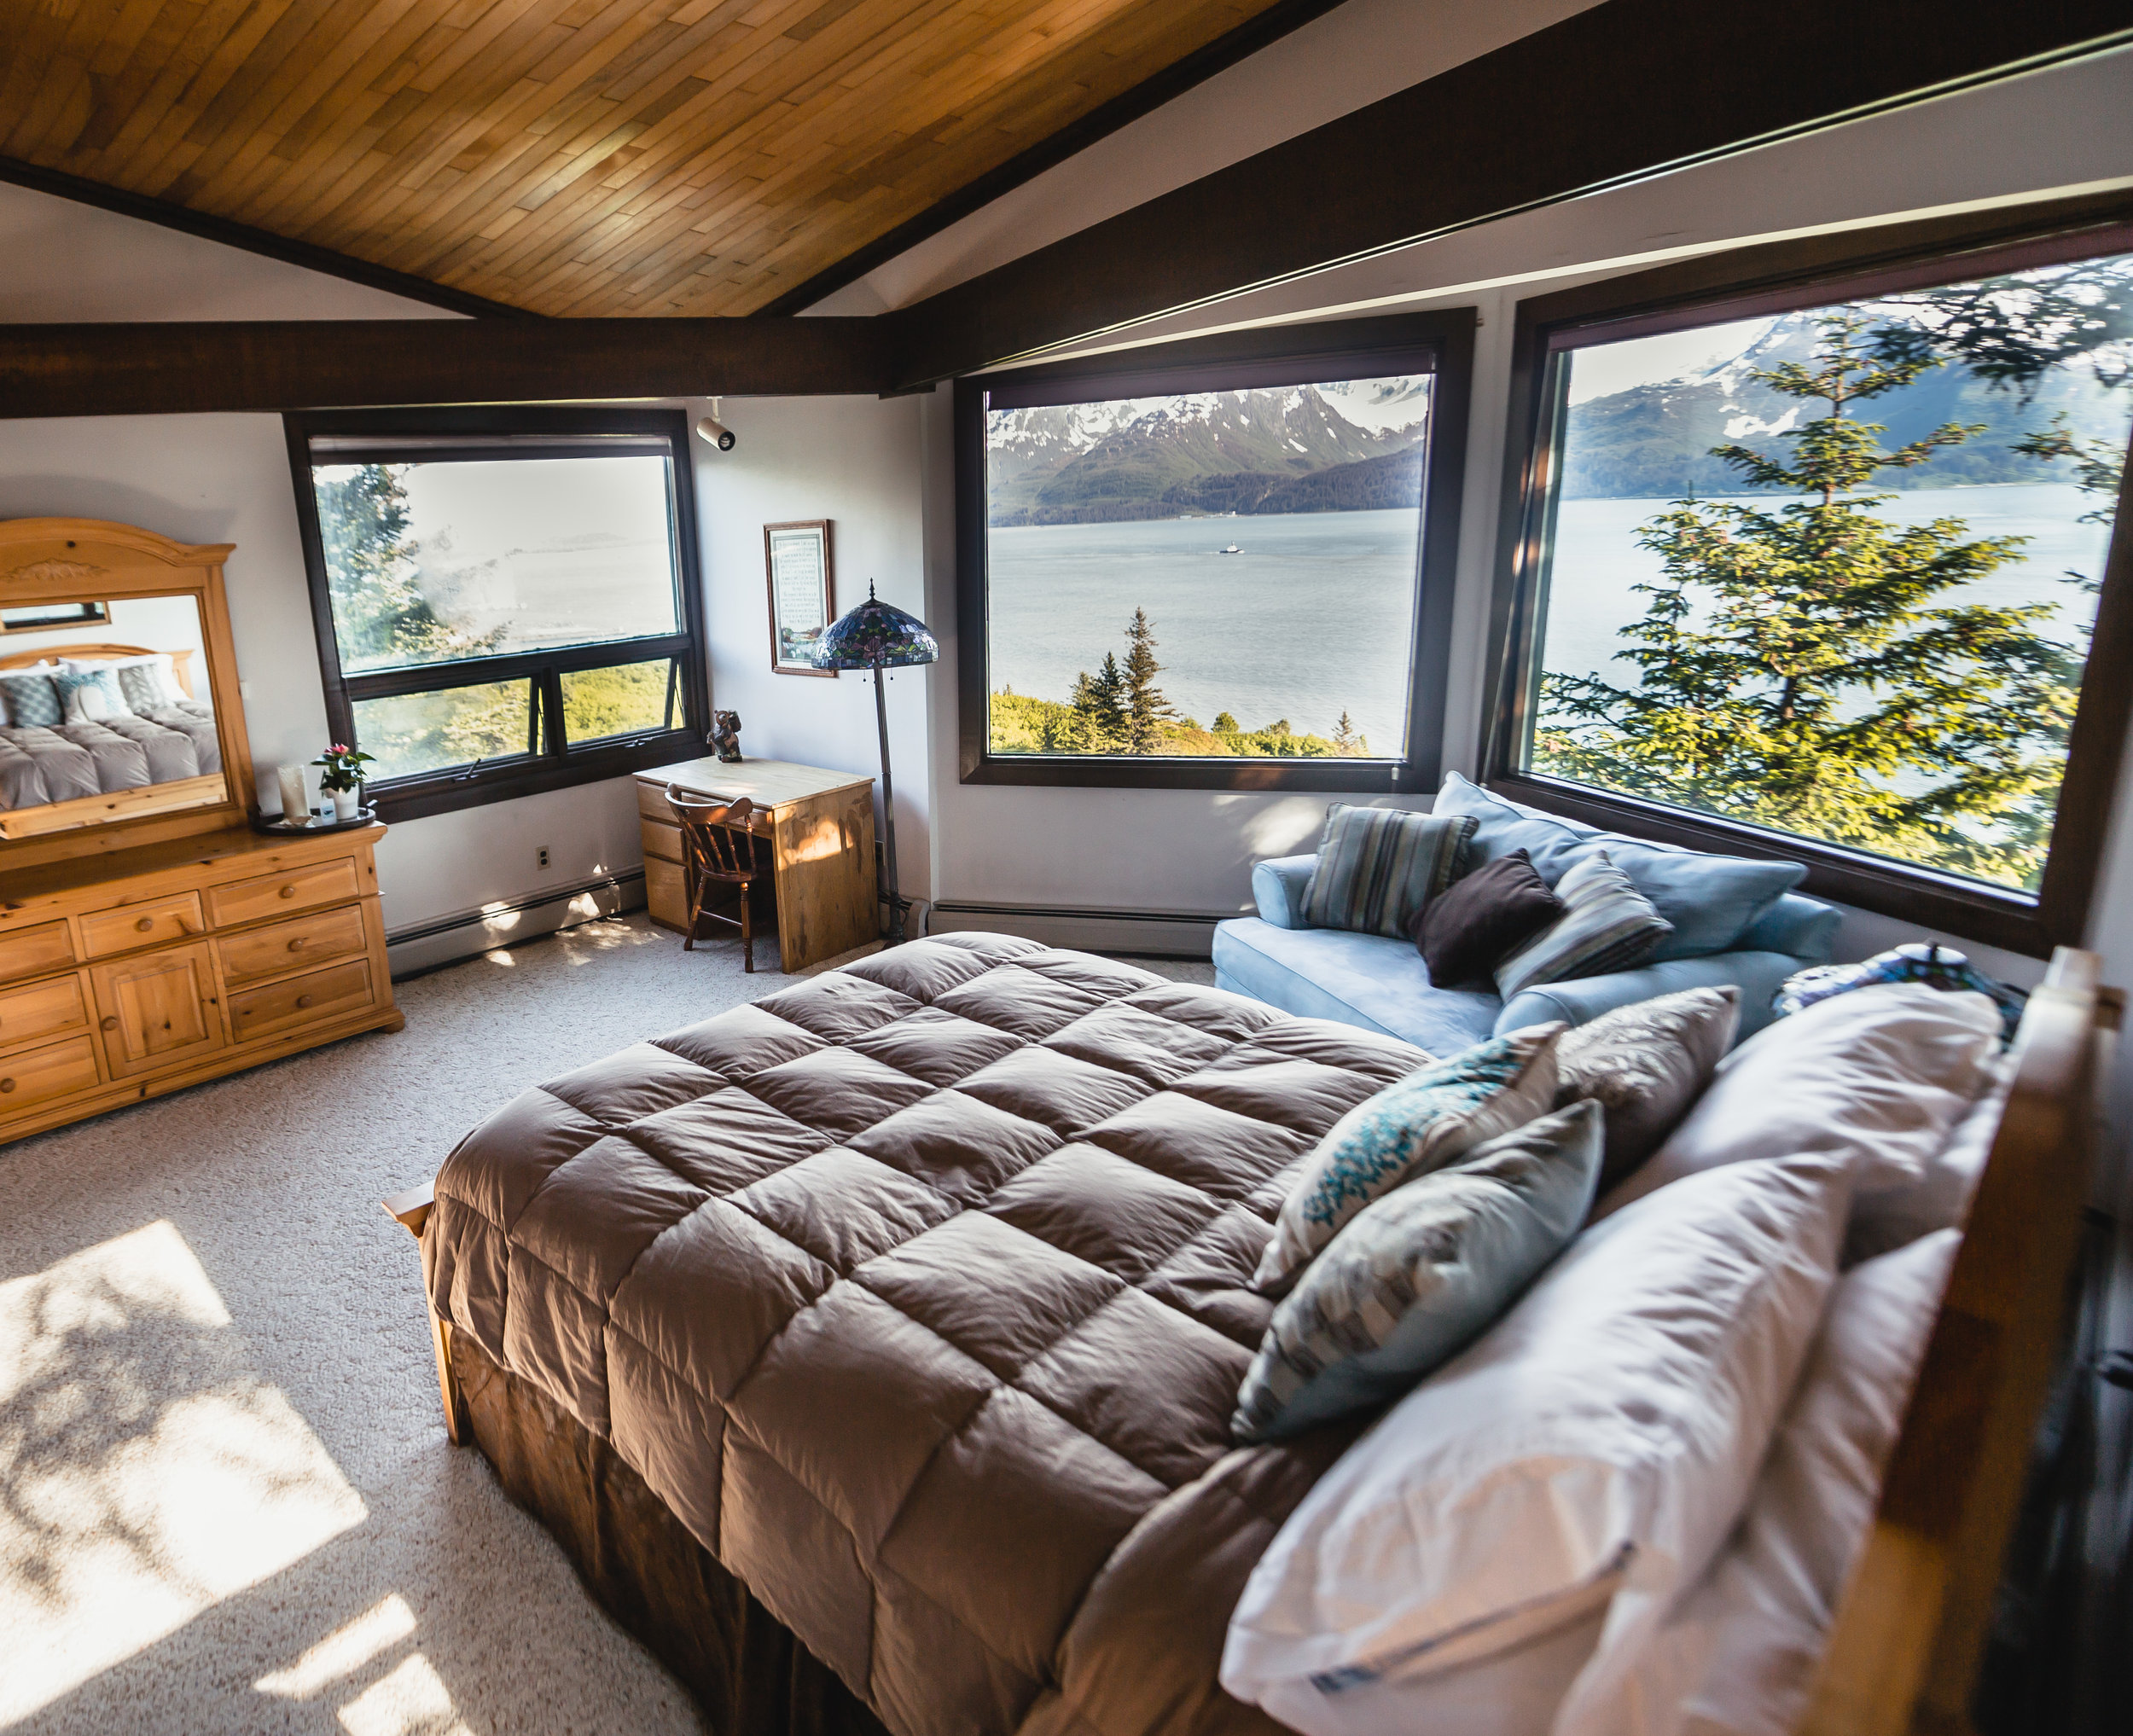 2019-06-06_The_Timber_House_Photo (25 of 37).jpg